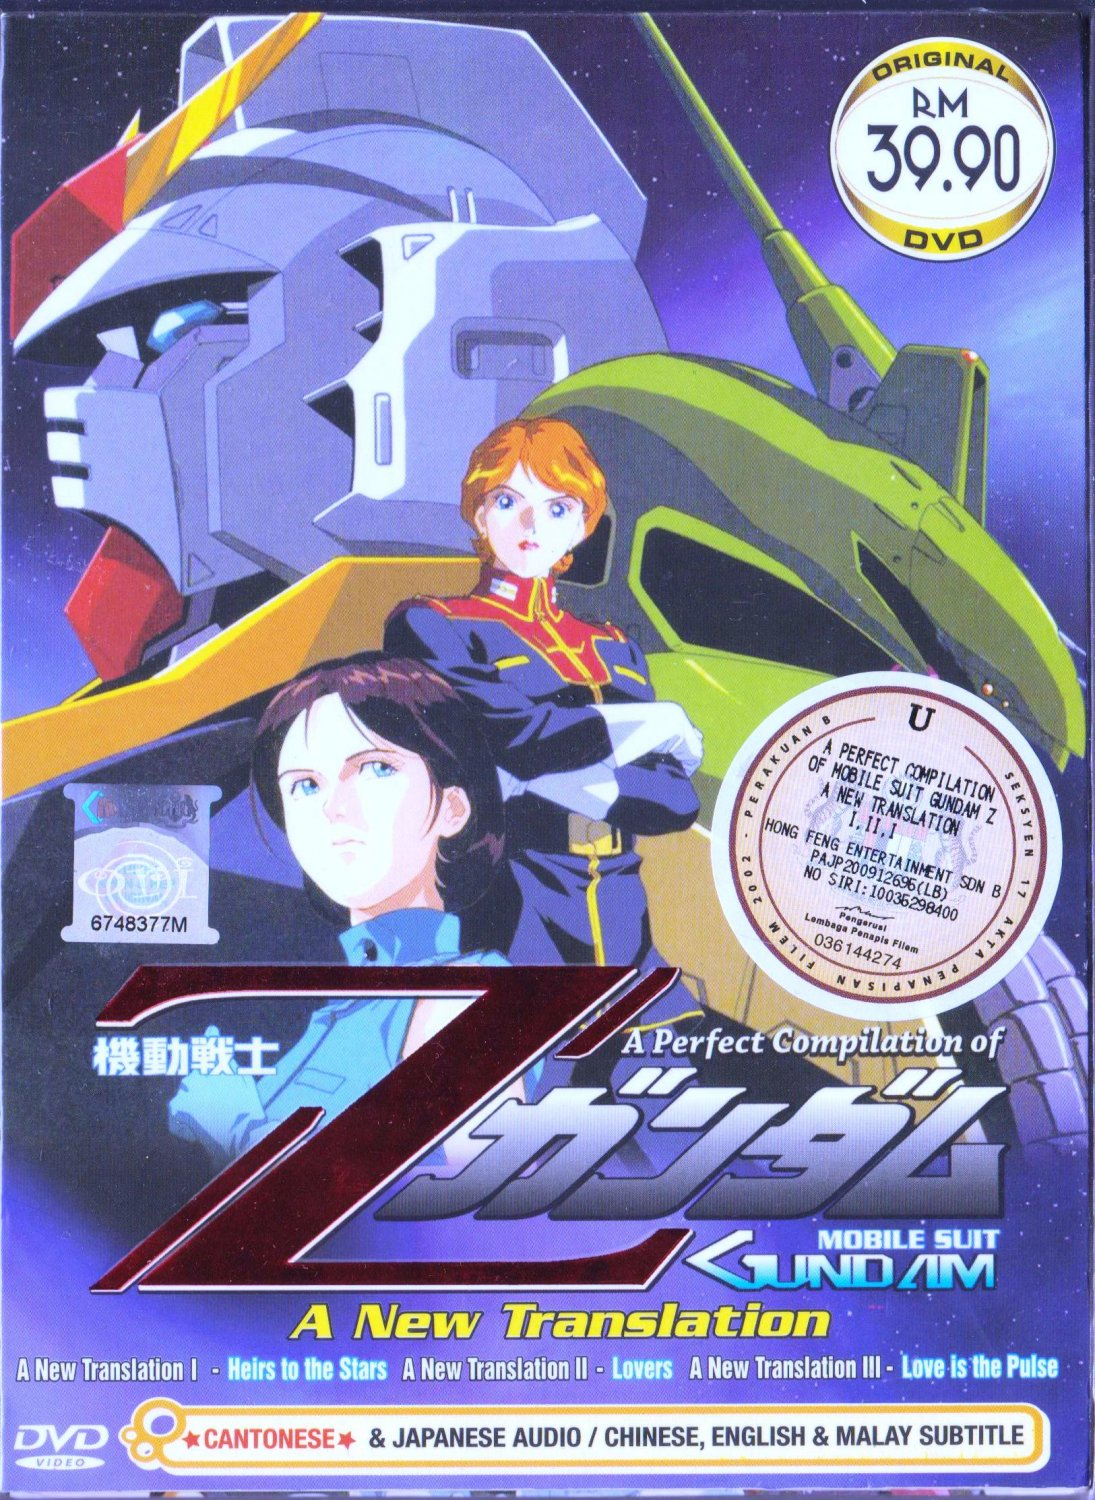 Anime DVD A Perfect Compilation Of Mobile Suit Gundam Zeta A New Translation 1-3